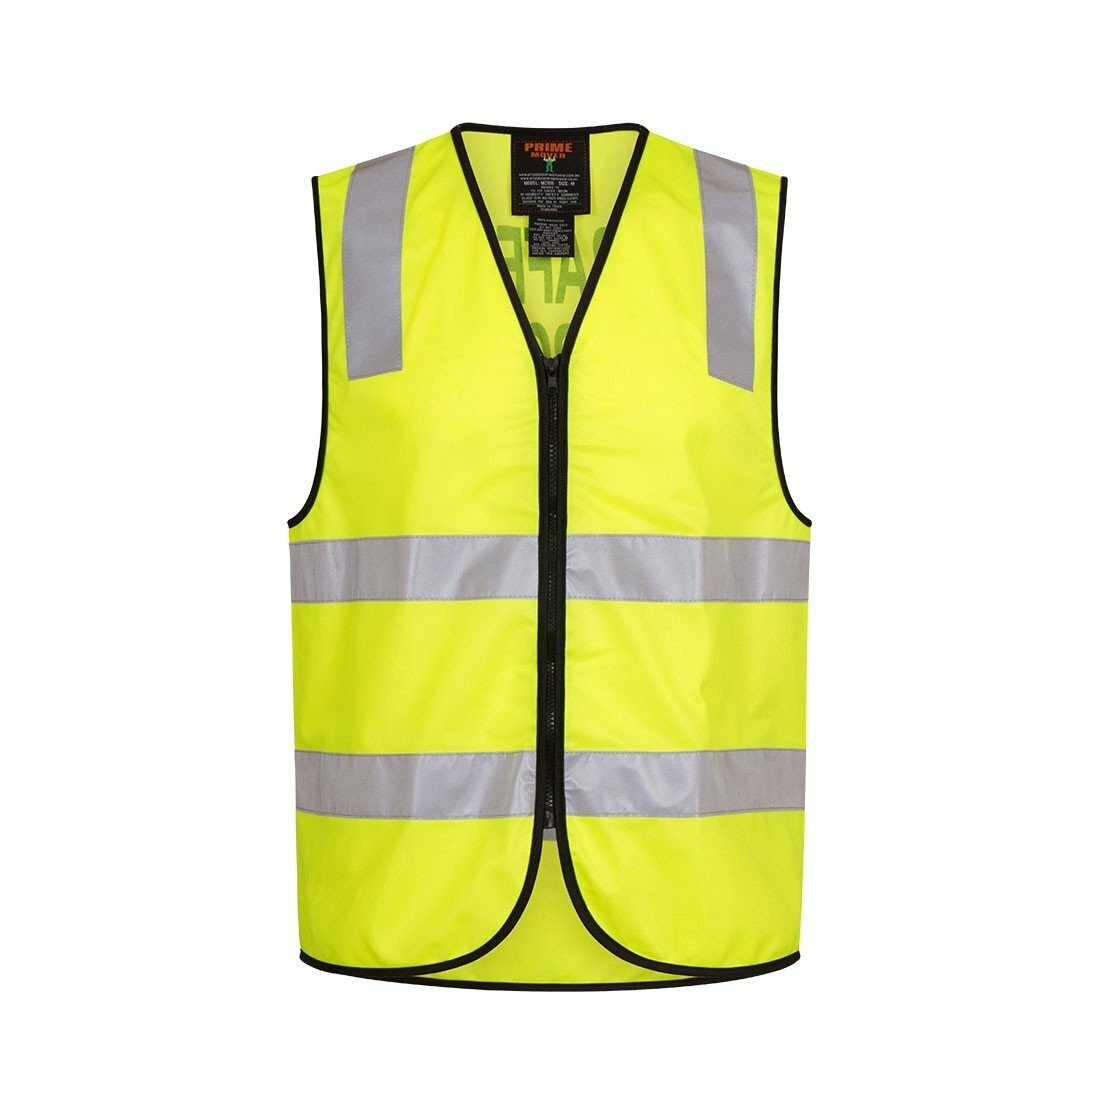 MZ105 Day/Night Safety Vest with Tape